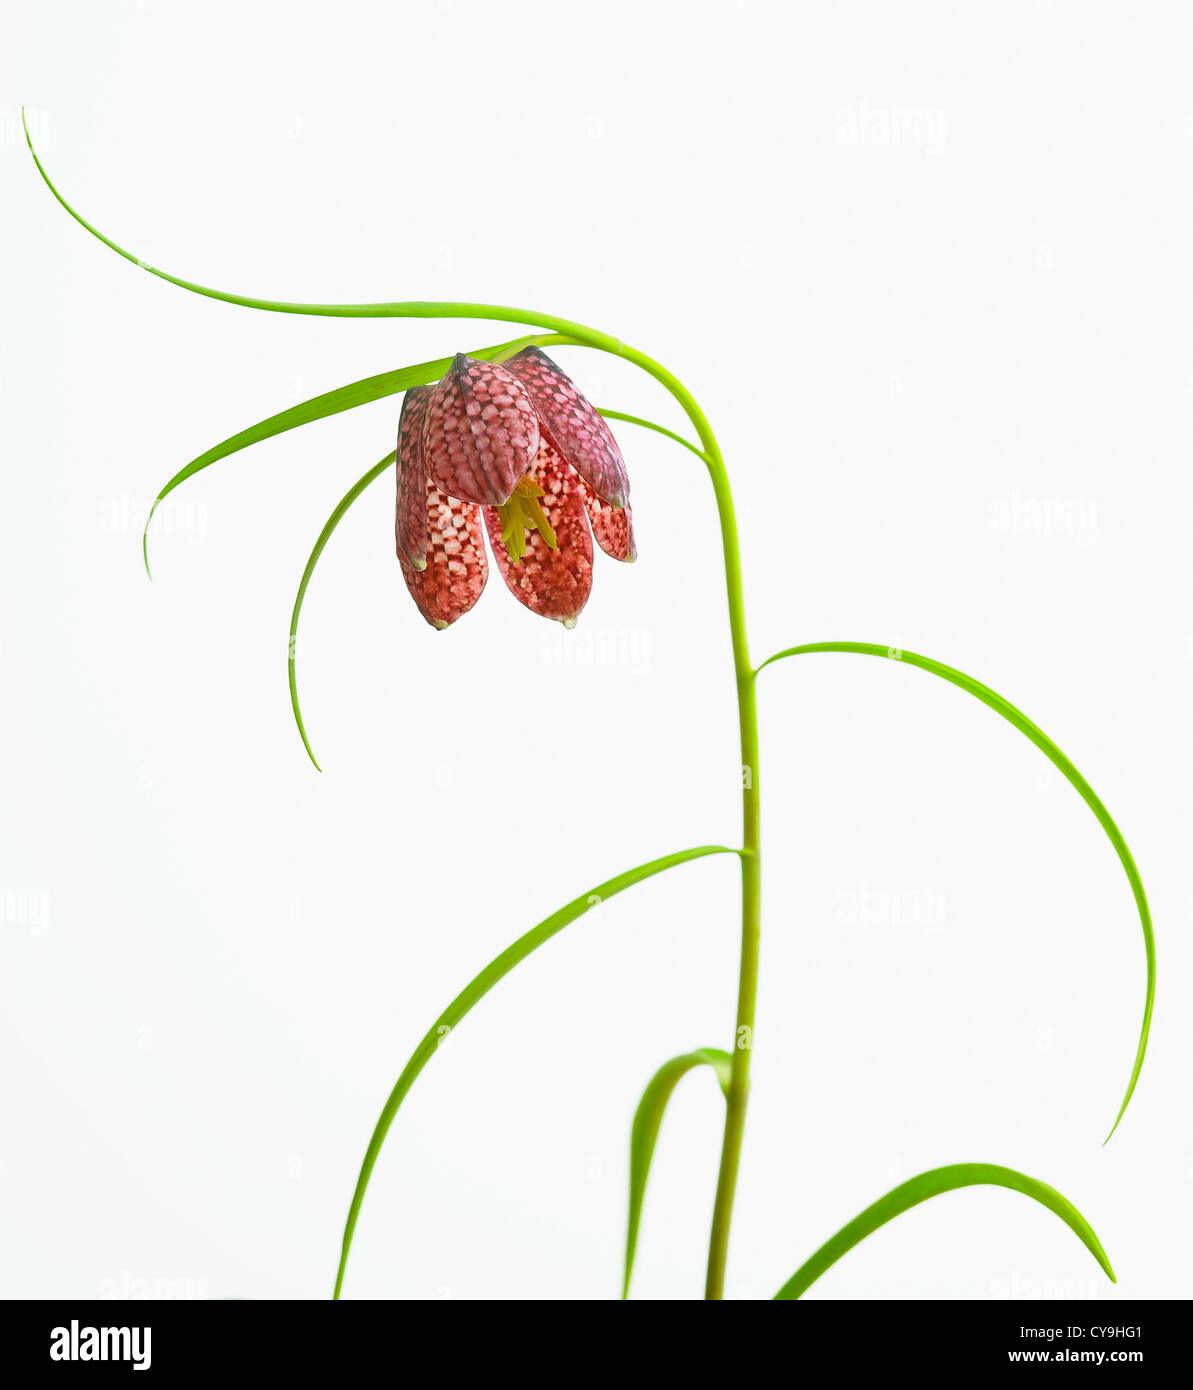 Fritillaria meleagris, Snake's head fritillary. Single red spotted flower on stem with thin leaves against white - Stock Image